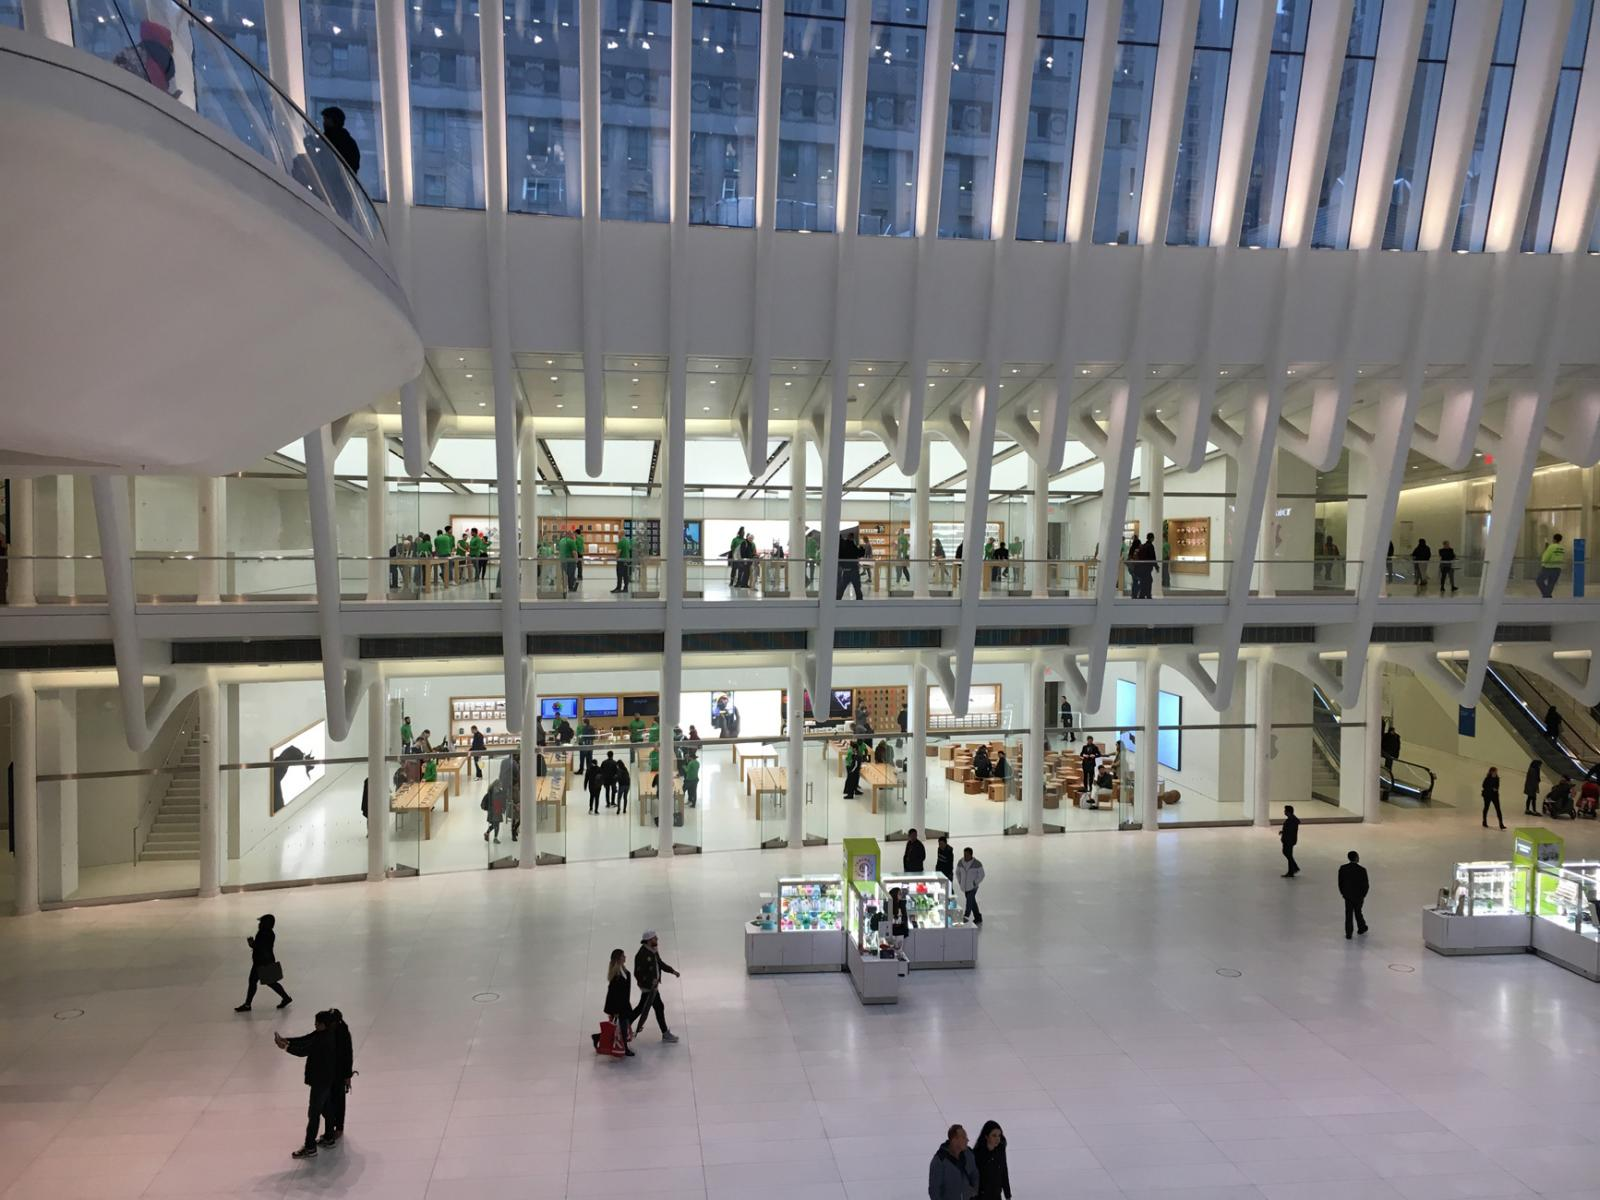 The Oculus in NYC